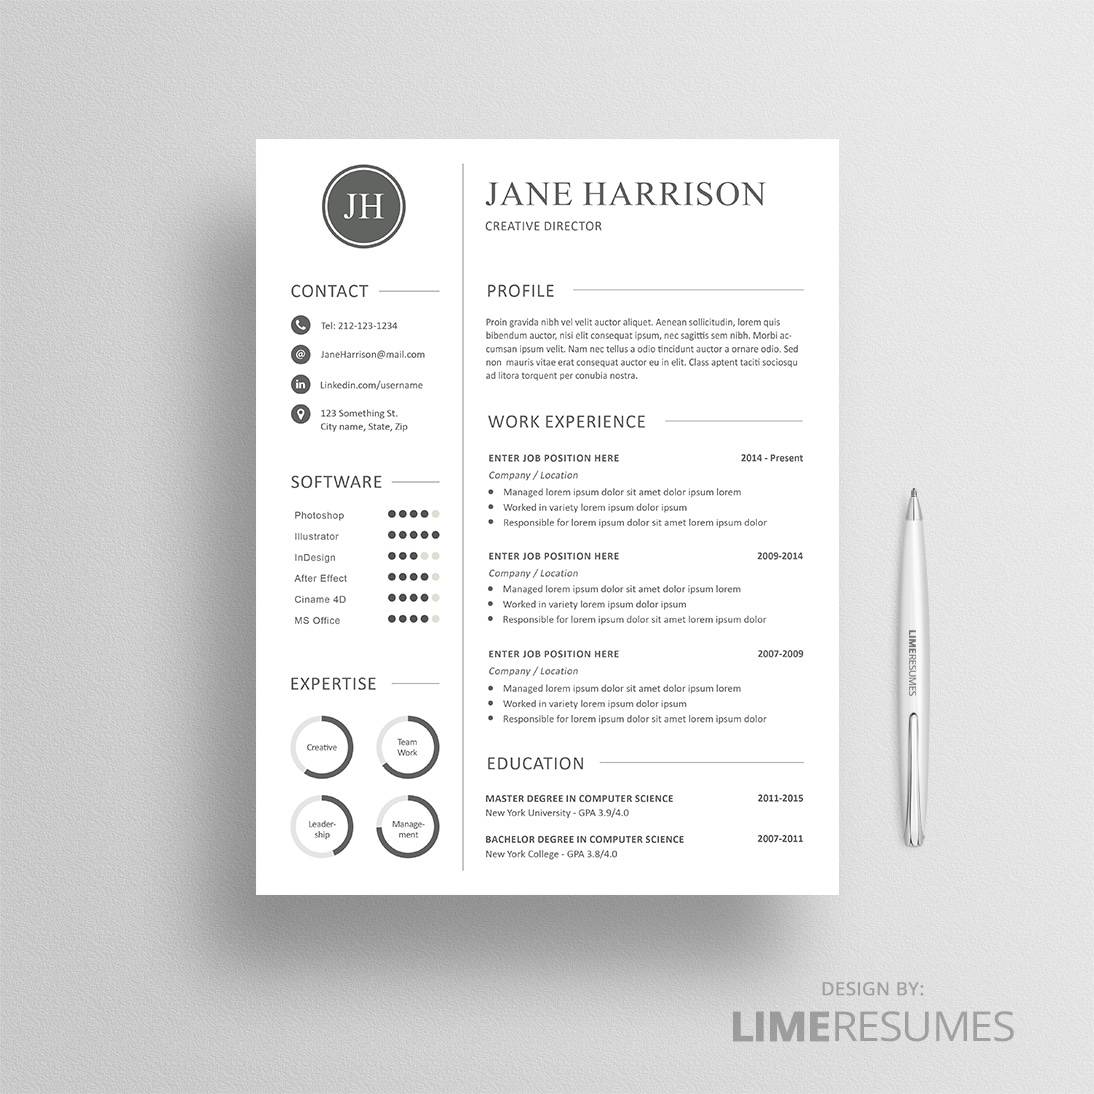 Professional Resume Templates With Cover Letters  Limeresumes